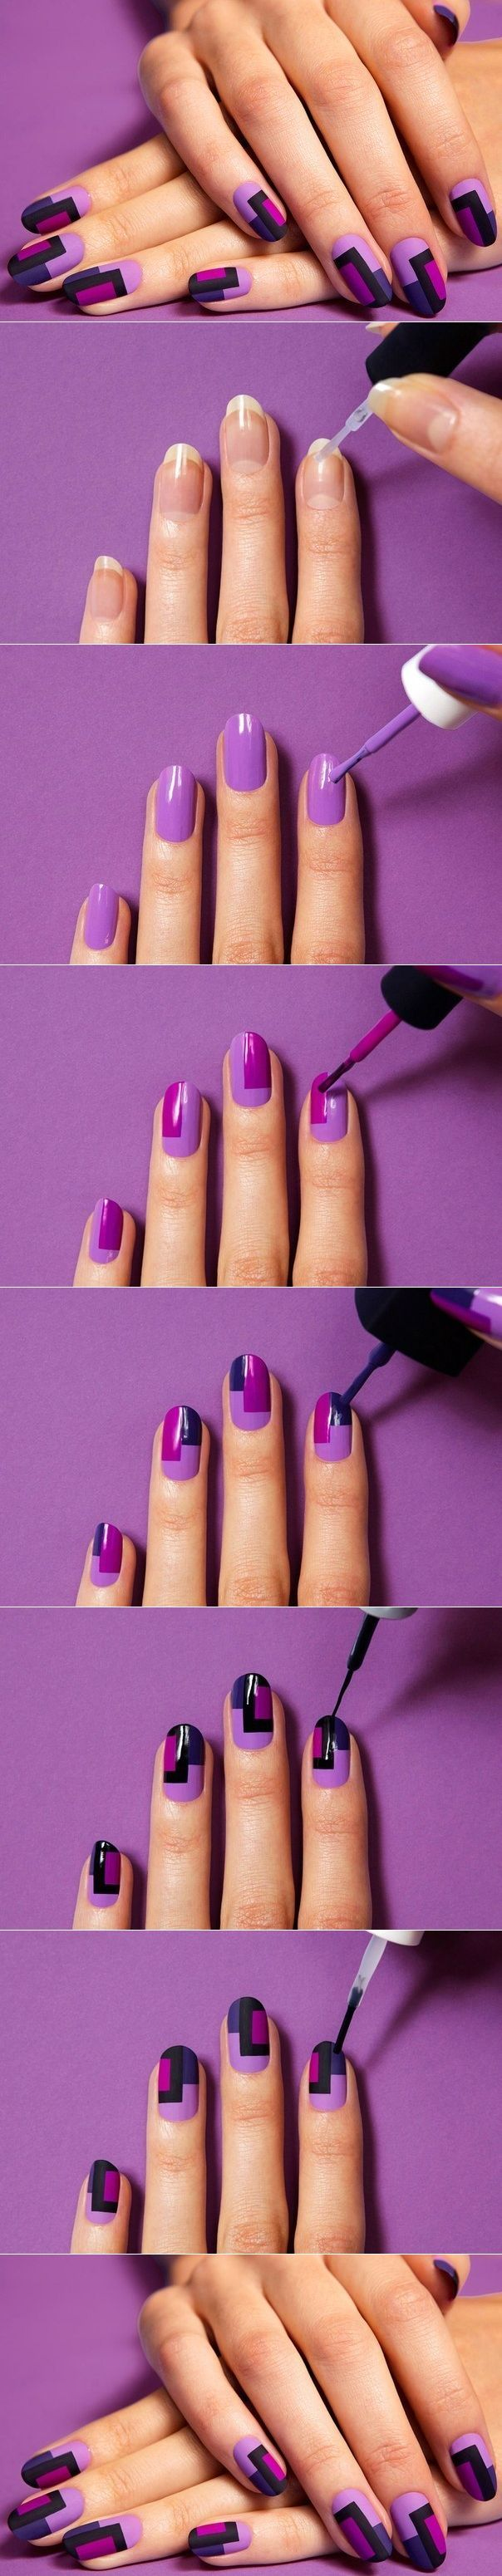 block nail painting tutorial | Nails | Pinterest | Nagelschere ...